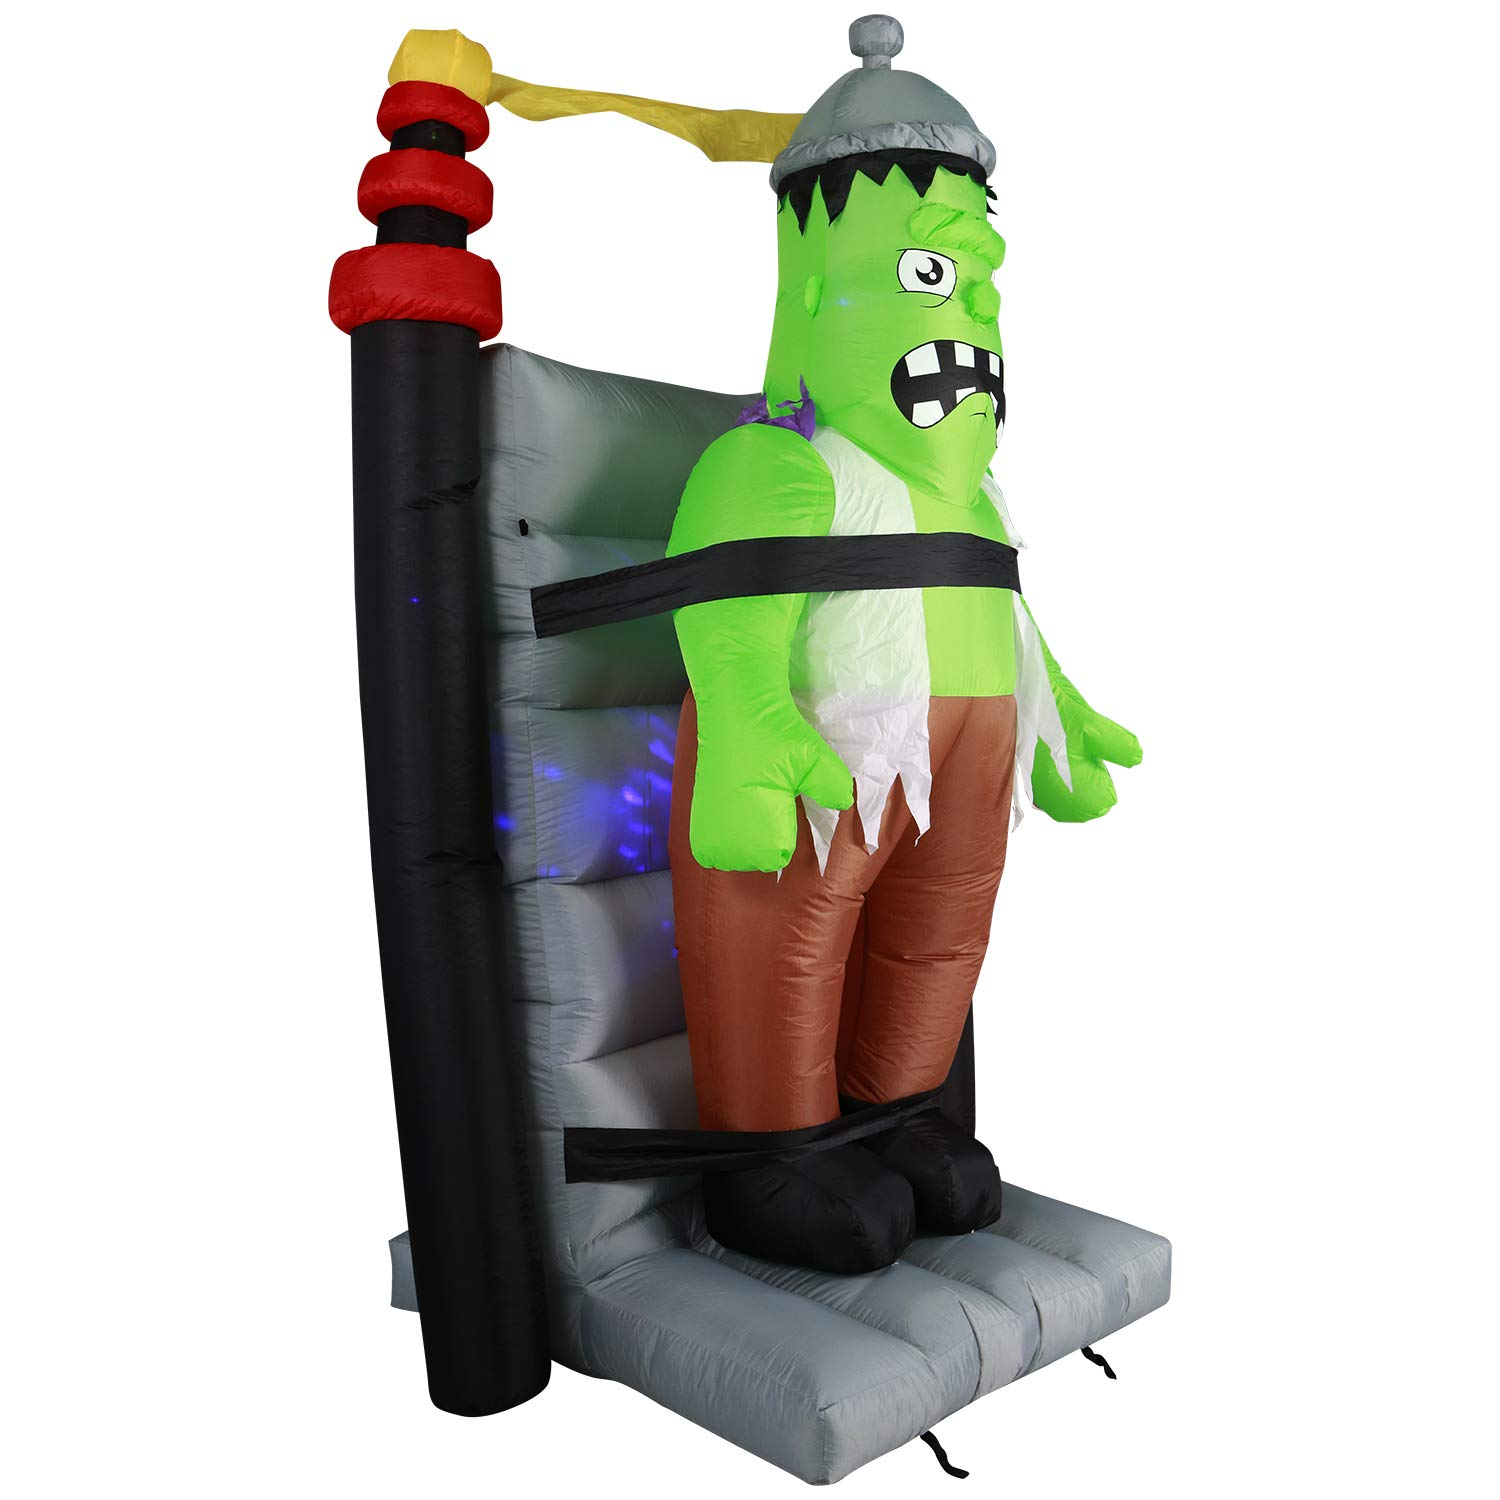 Amazon.com: Holidayana - Frankenstein - Decoración hinchable ...